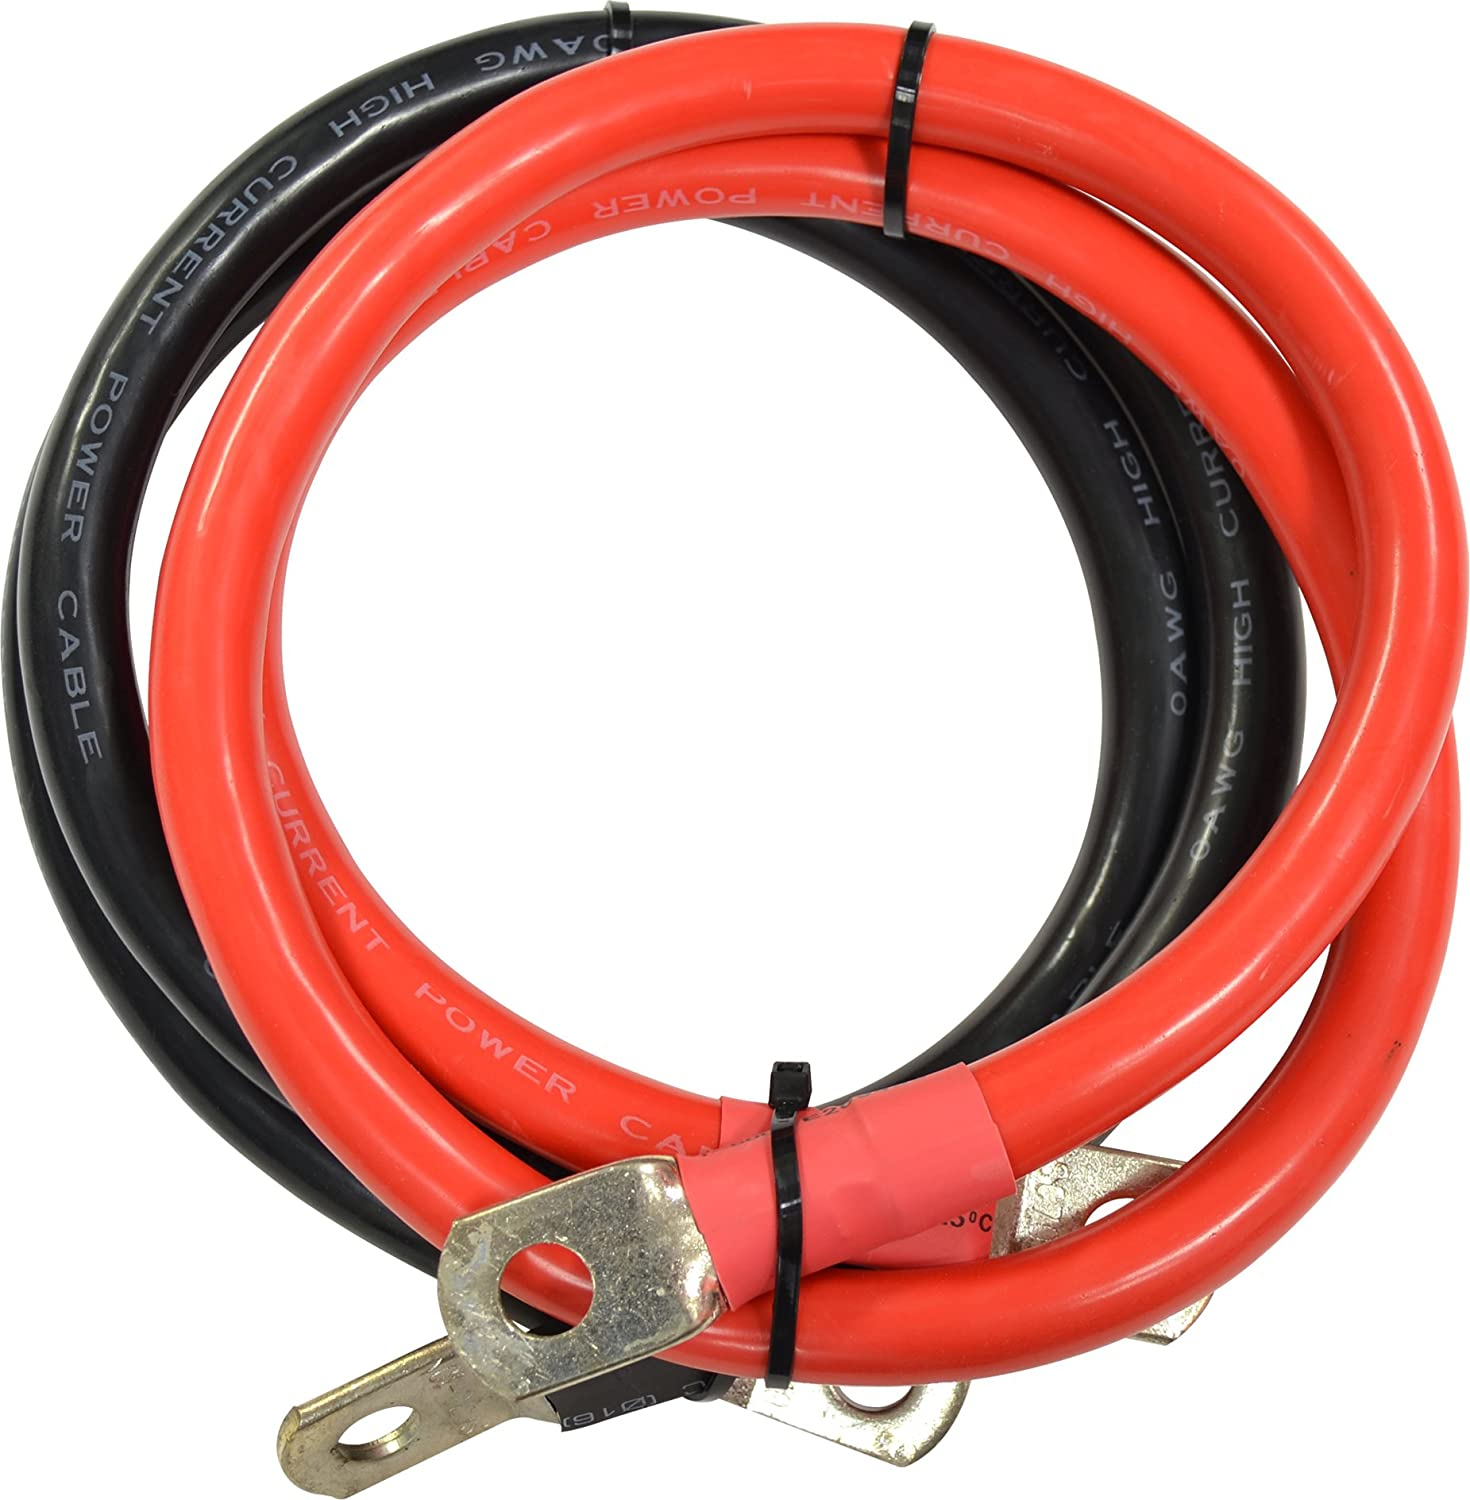 WHISTLER Super sale period limited CABLES Los Angeles Mall FOR PRO 3000W